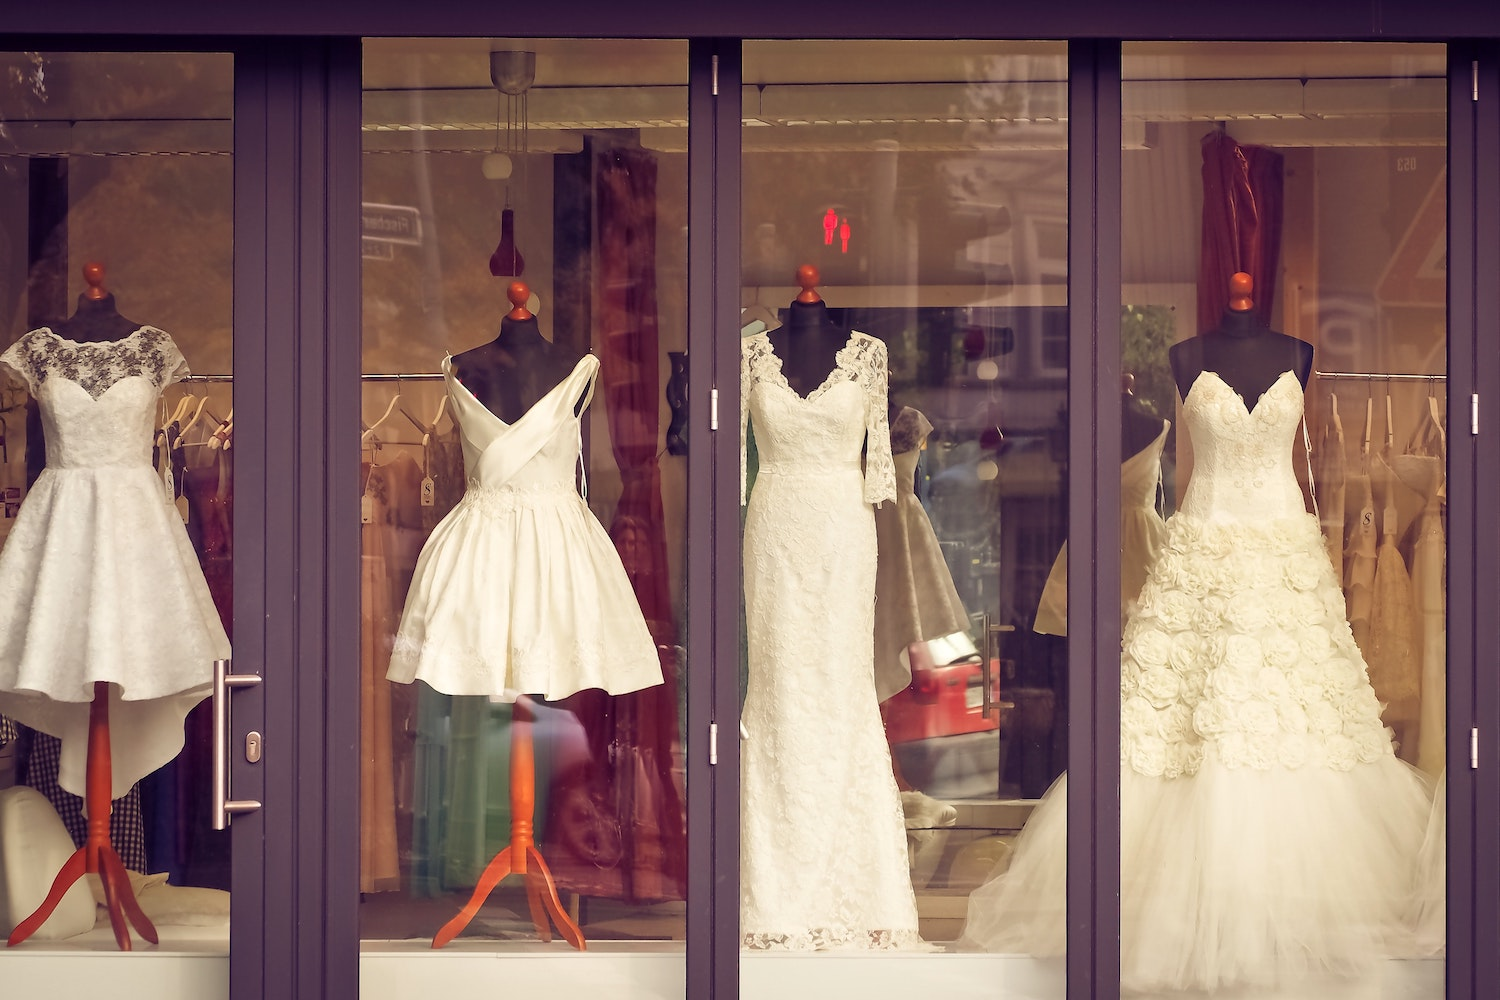 Ollie S Bargain Outlet To Hold Wedding Dress Sale Feb 21 25